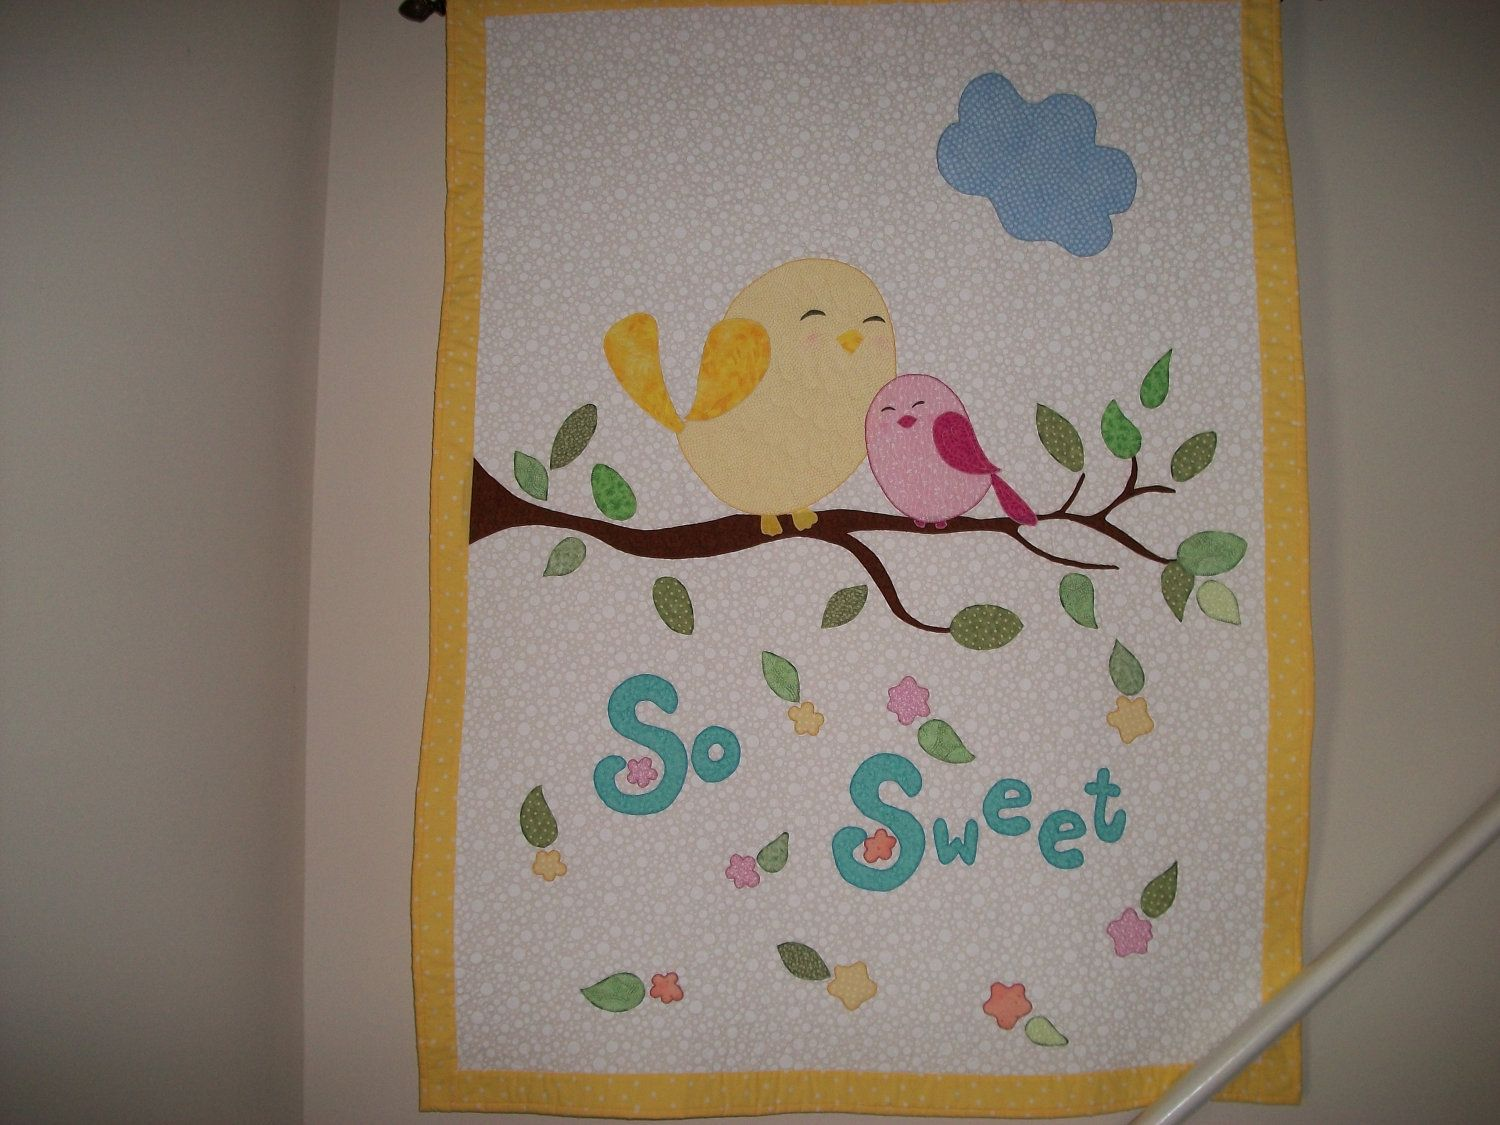 Baby/Toddler Quilt, Baby Shower Gift, Nursery Decor, Handmade, Wallhanging, Applique. $165.00, via Etsy.